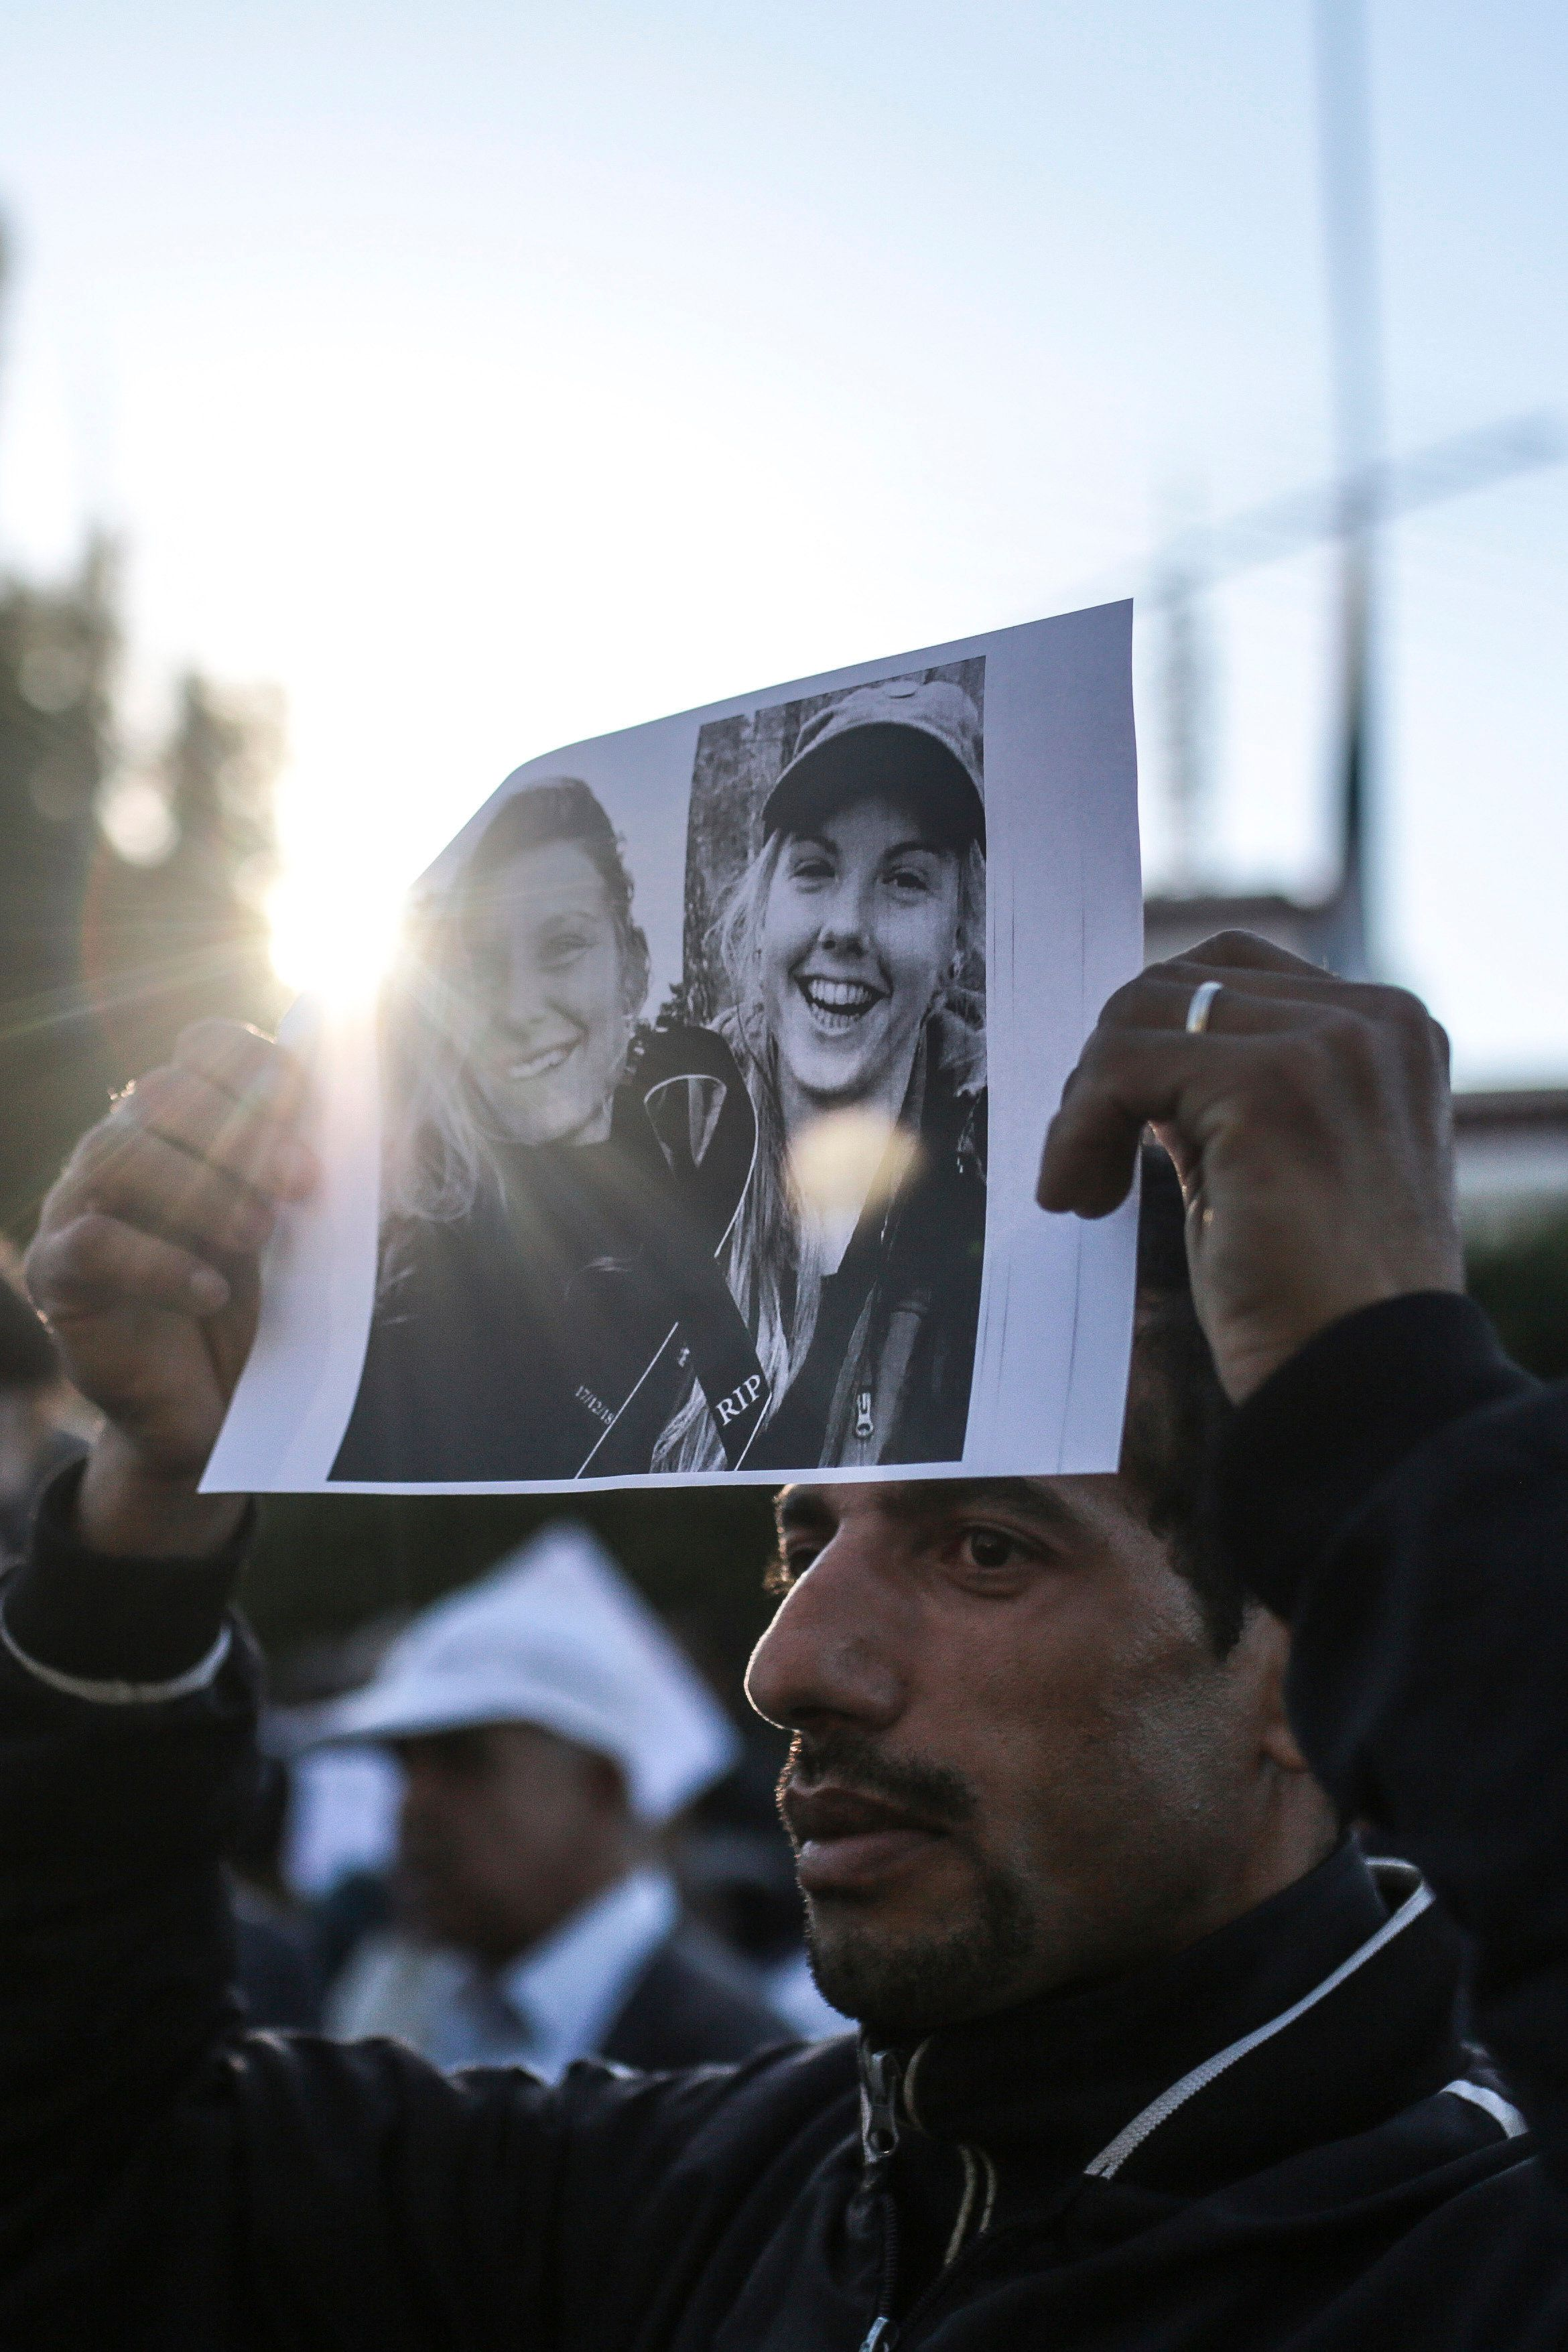 A man carries the picture of 28-year-old Norwegian Maren Ueland and 24-year-old Danish Louisa Vesterager Jespersen, during a candlelight vigil outside the Norwegian embassy in Rabat for the two Scandinavian university students who were killed in a terrorist attack in a remote area of the Atlas Mountains, Morocco, Saturday, Dec. 22, 2018. Moroccans gathered Saturday in front of the Norwegian and Danish embassies in Rabat in a candlelight vigil to honor two Scandinavian university students killed in a terrorist attack in the Atlas Mountains. (AP Photo/Mosa'ab Elshamy)